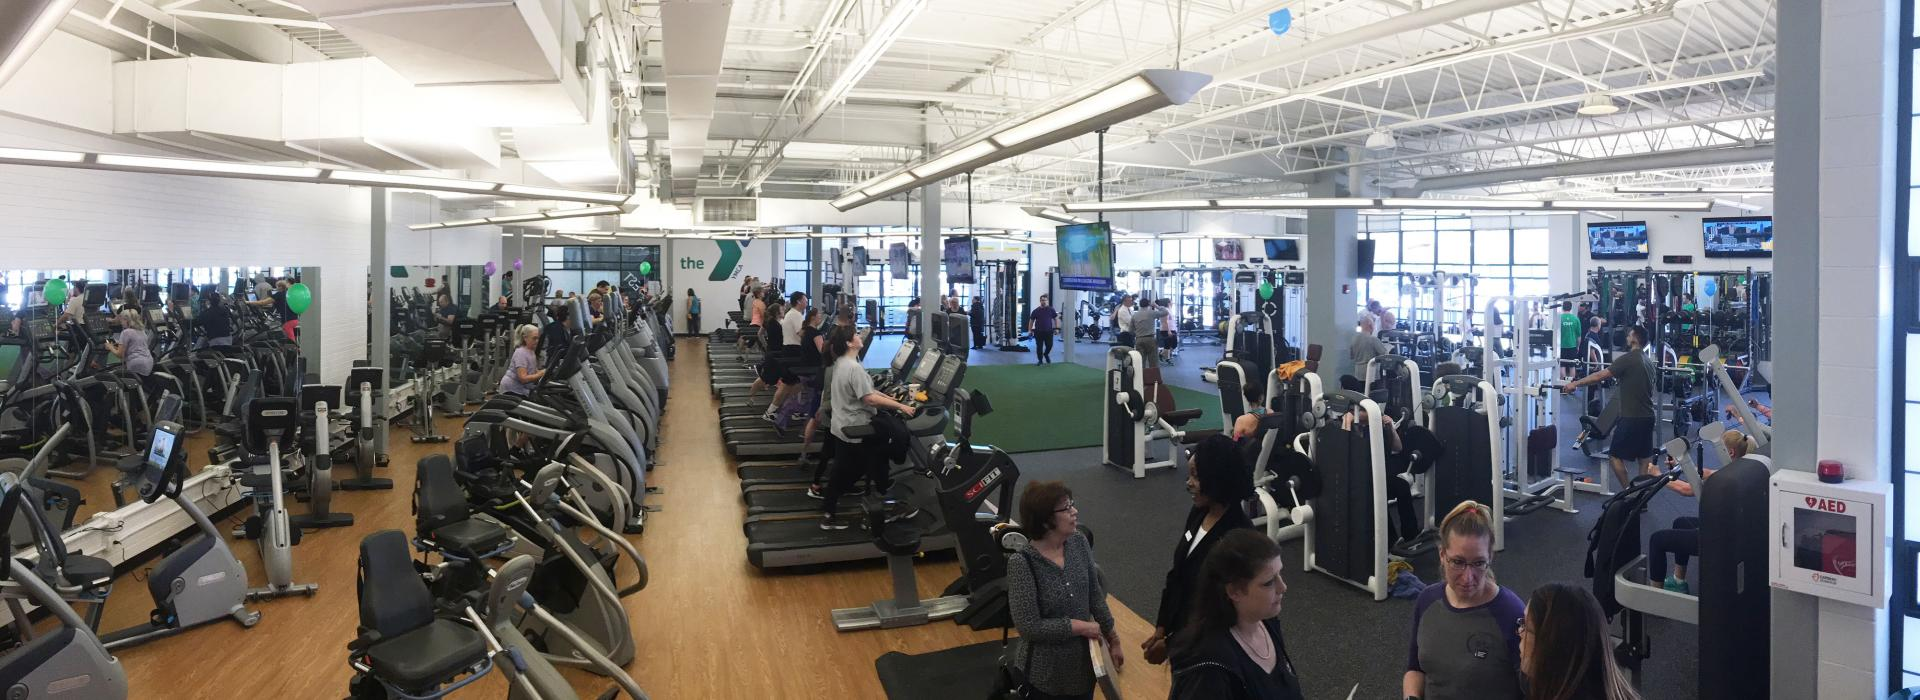 Wheeler YMCA | YMCA Hartford